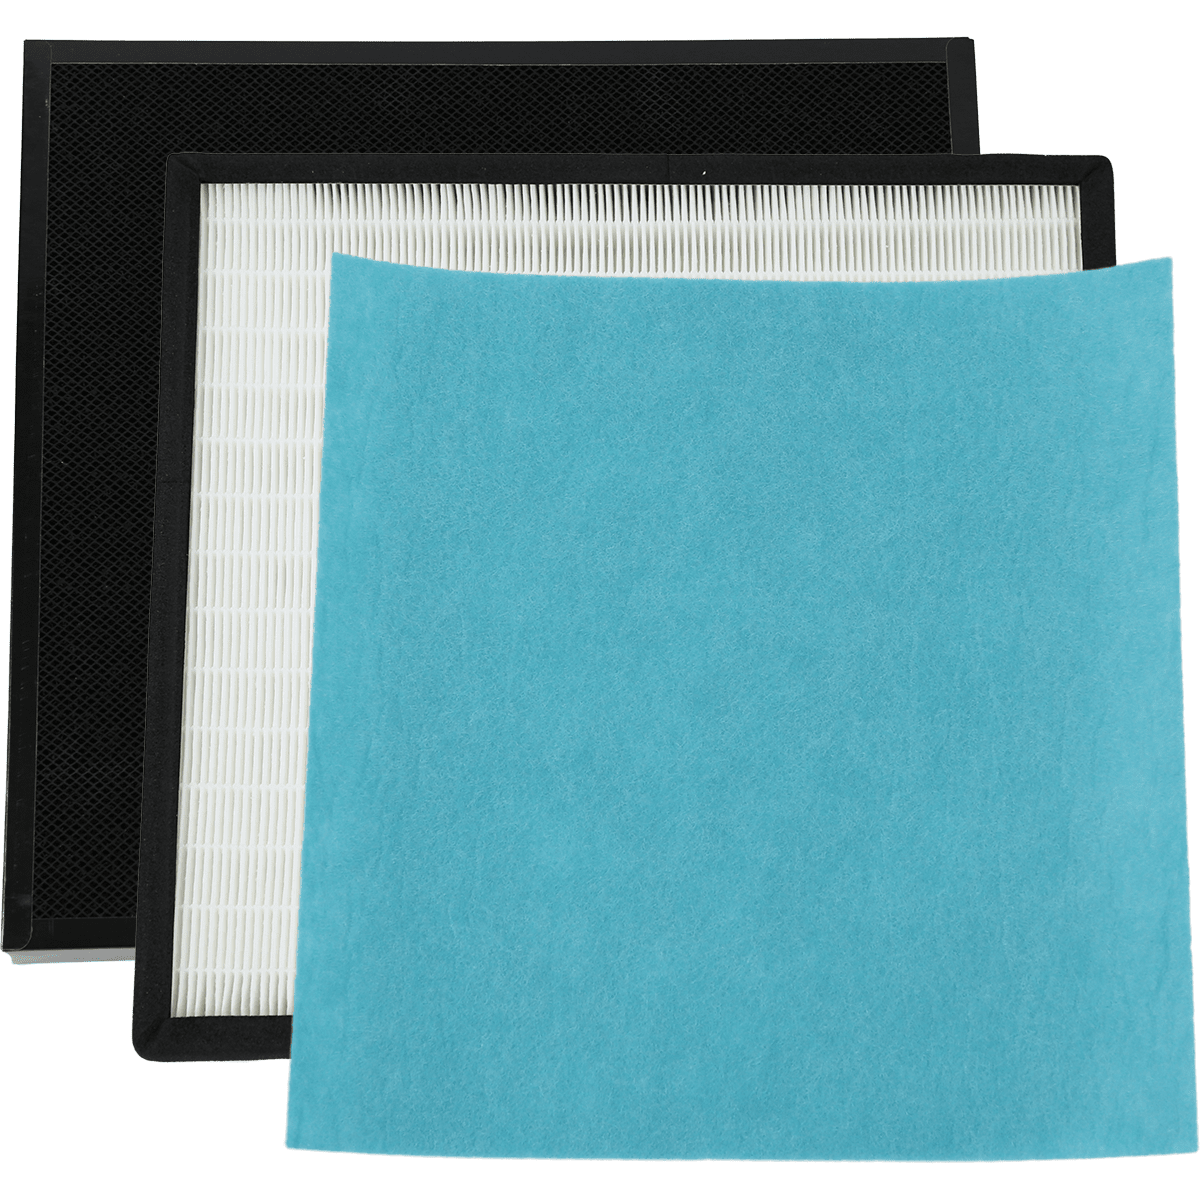 Oransi v-hepa Max Replacement Filter Kit (RFM80) or2262